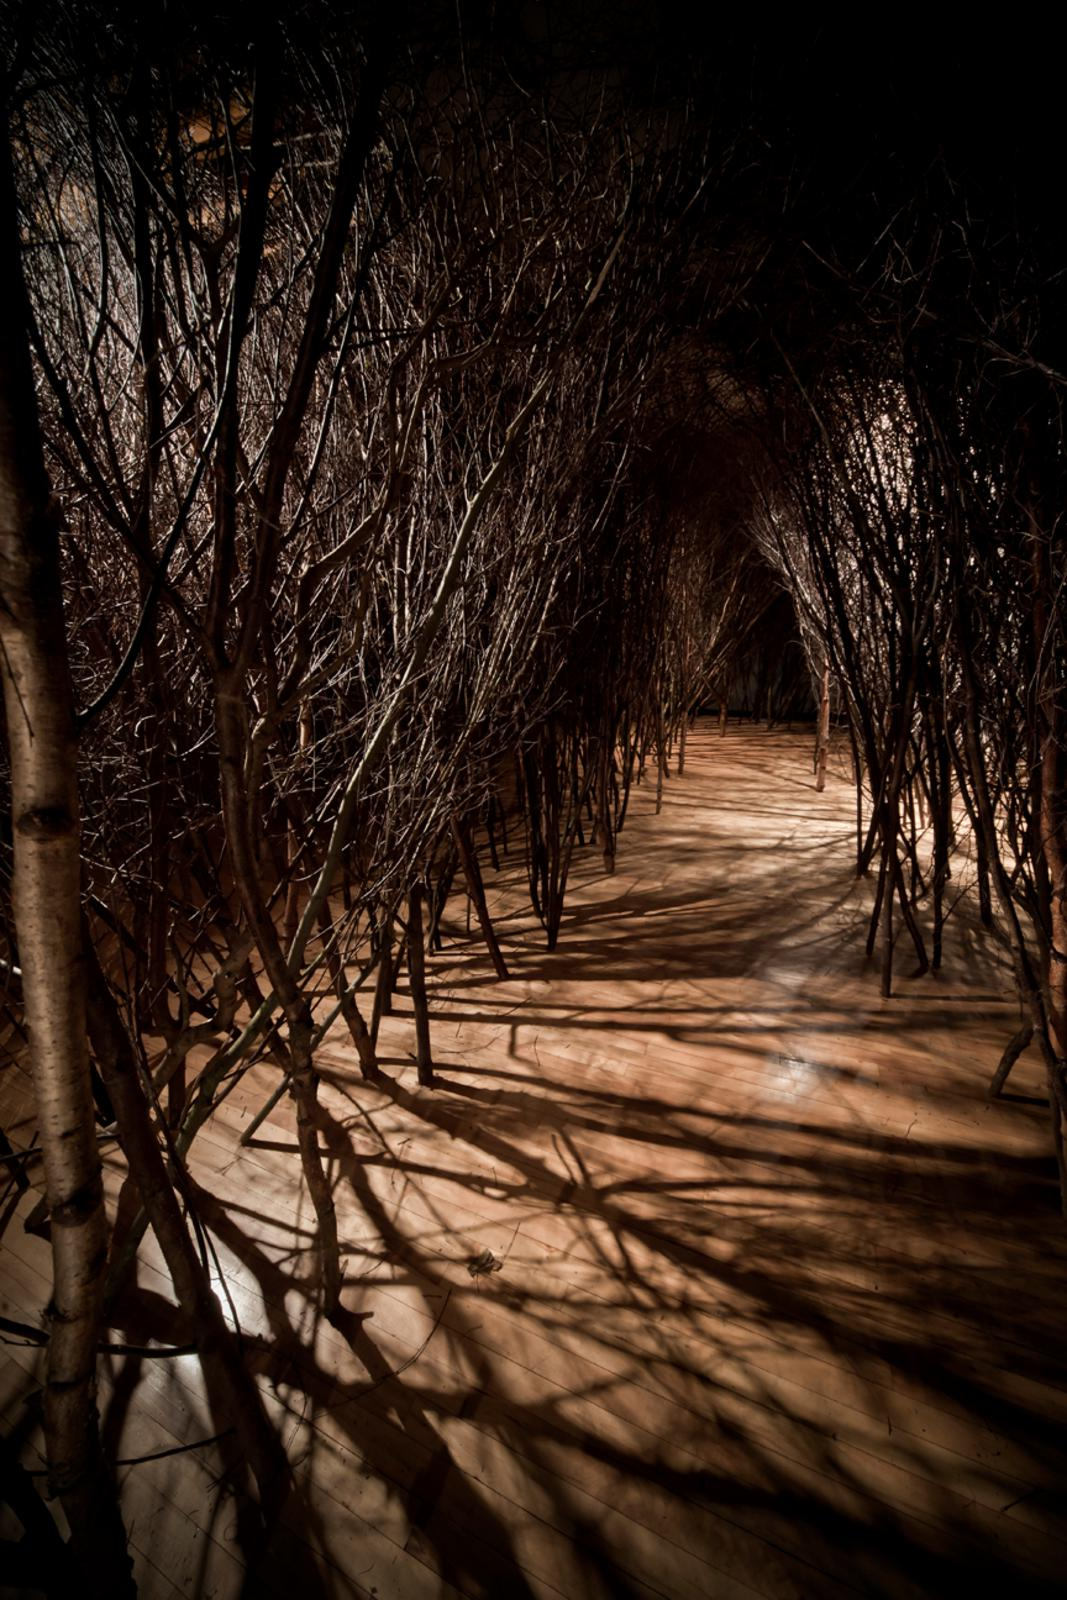 The forked forest path  Artwork  Studio Olafur Eliasson